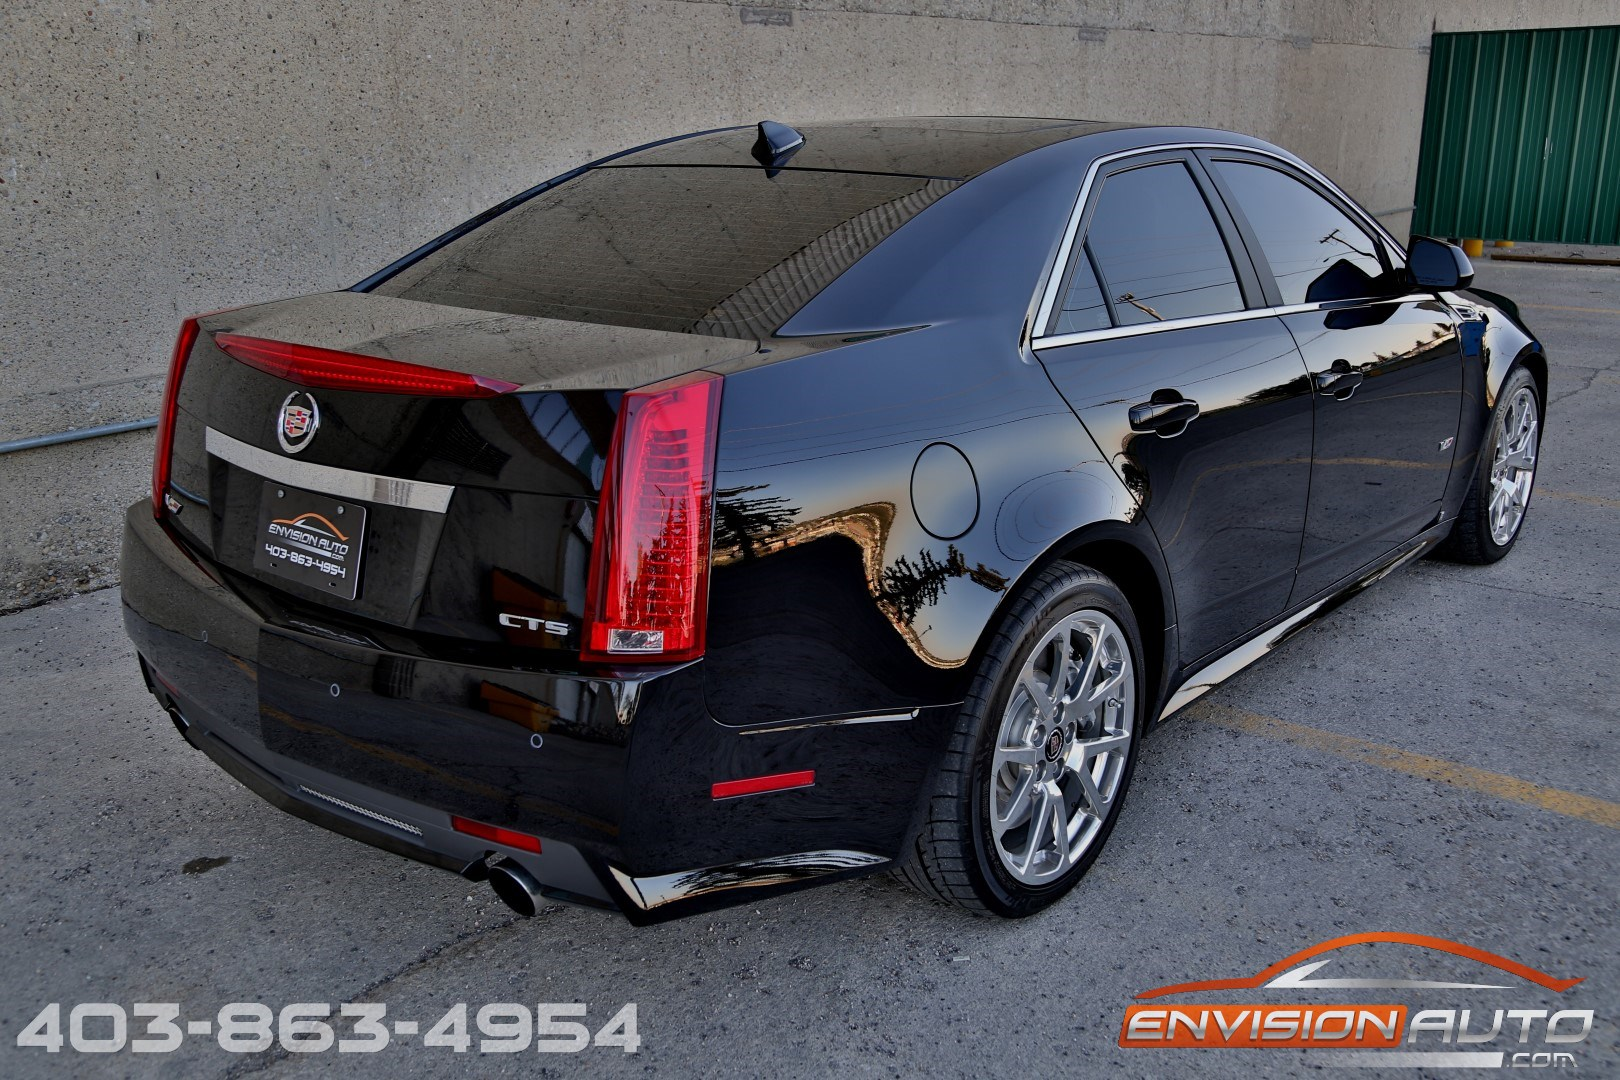 2009 cadillac cts v sedan 556hp envision auto. Black Bedroom Furniture Sets. Home Design Ideas